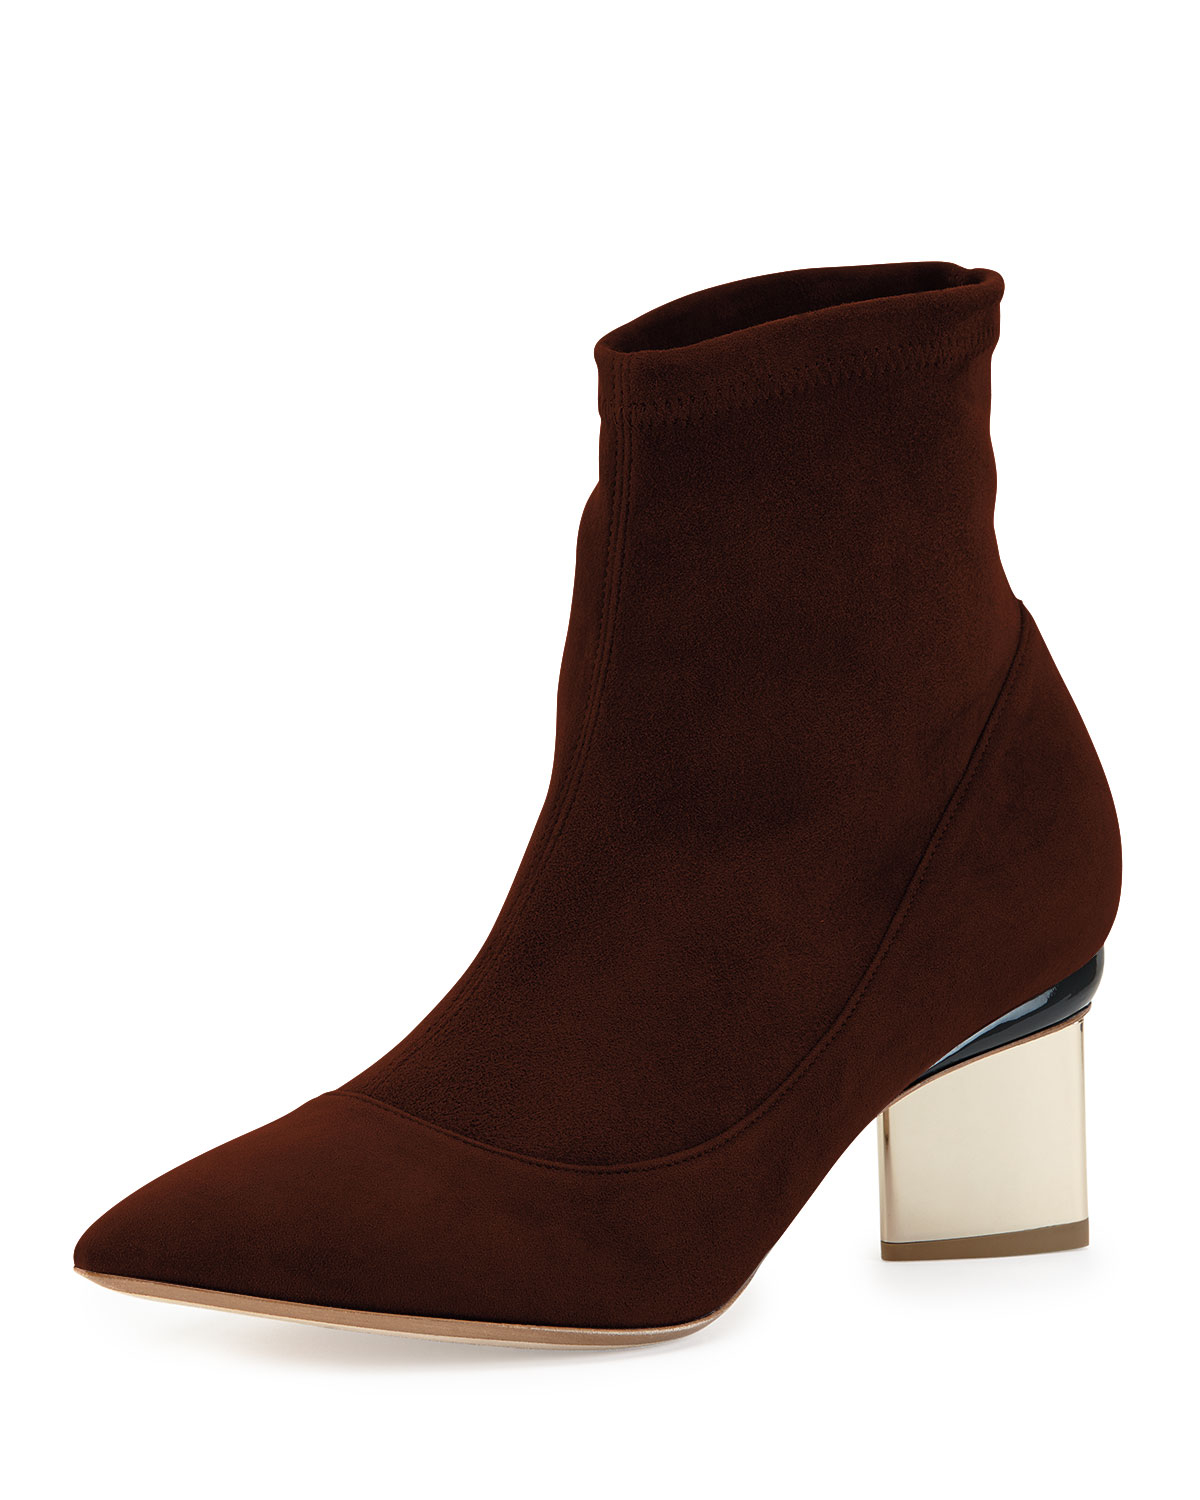 Lyst - Nicholas Kirkwood Suede Point-toe Ankle Boot in Brown ddaae5728e1e6